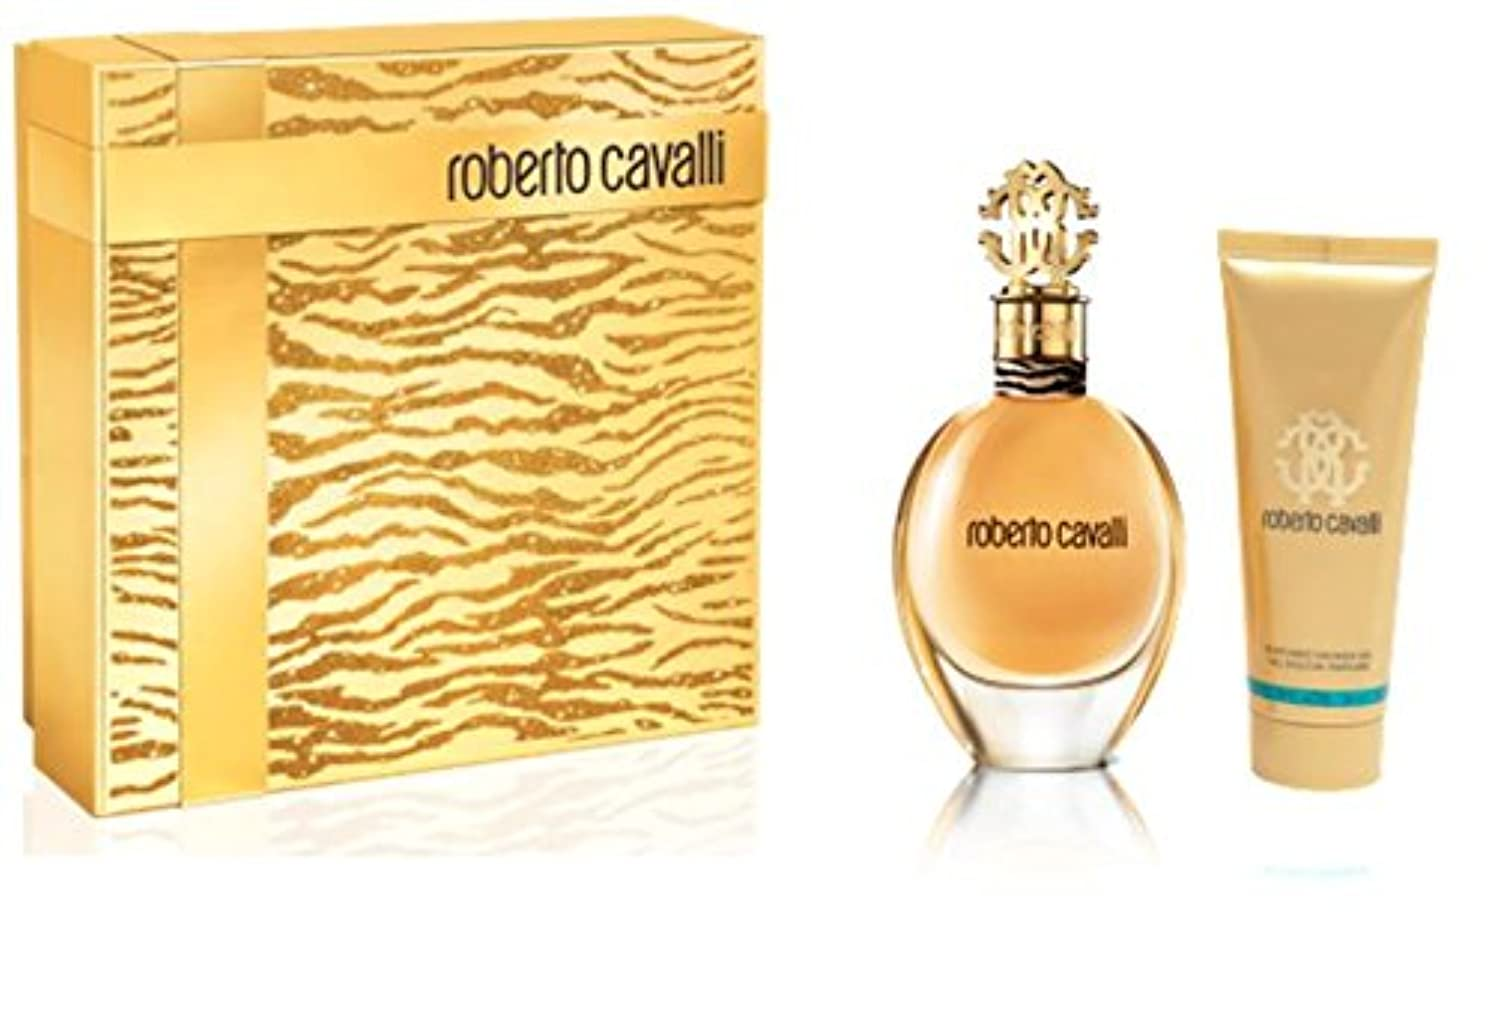 寝てる走る感性ロベルトカヴァリ Roberto Cavalli (New) Coffret: Eau De Parfum Spray 75ml + Body Lotion 75ml 2pcs [海外直送品]